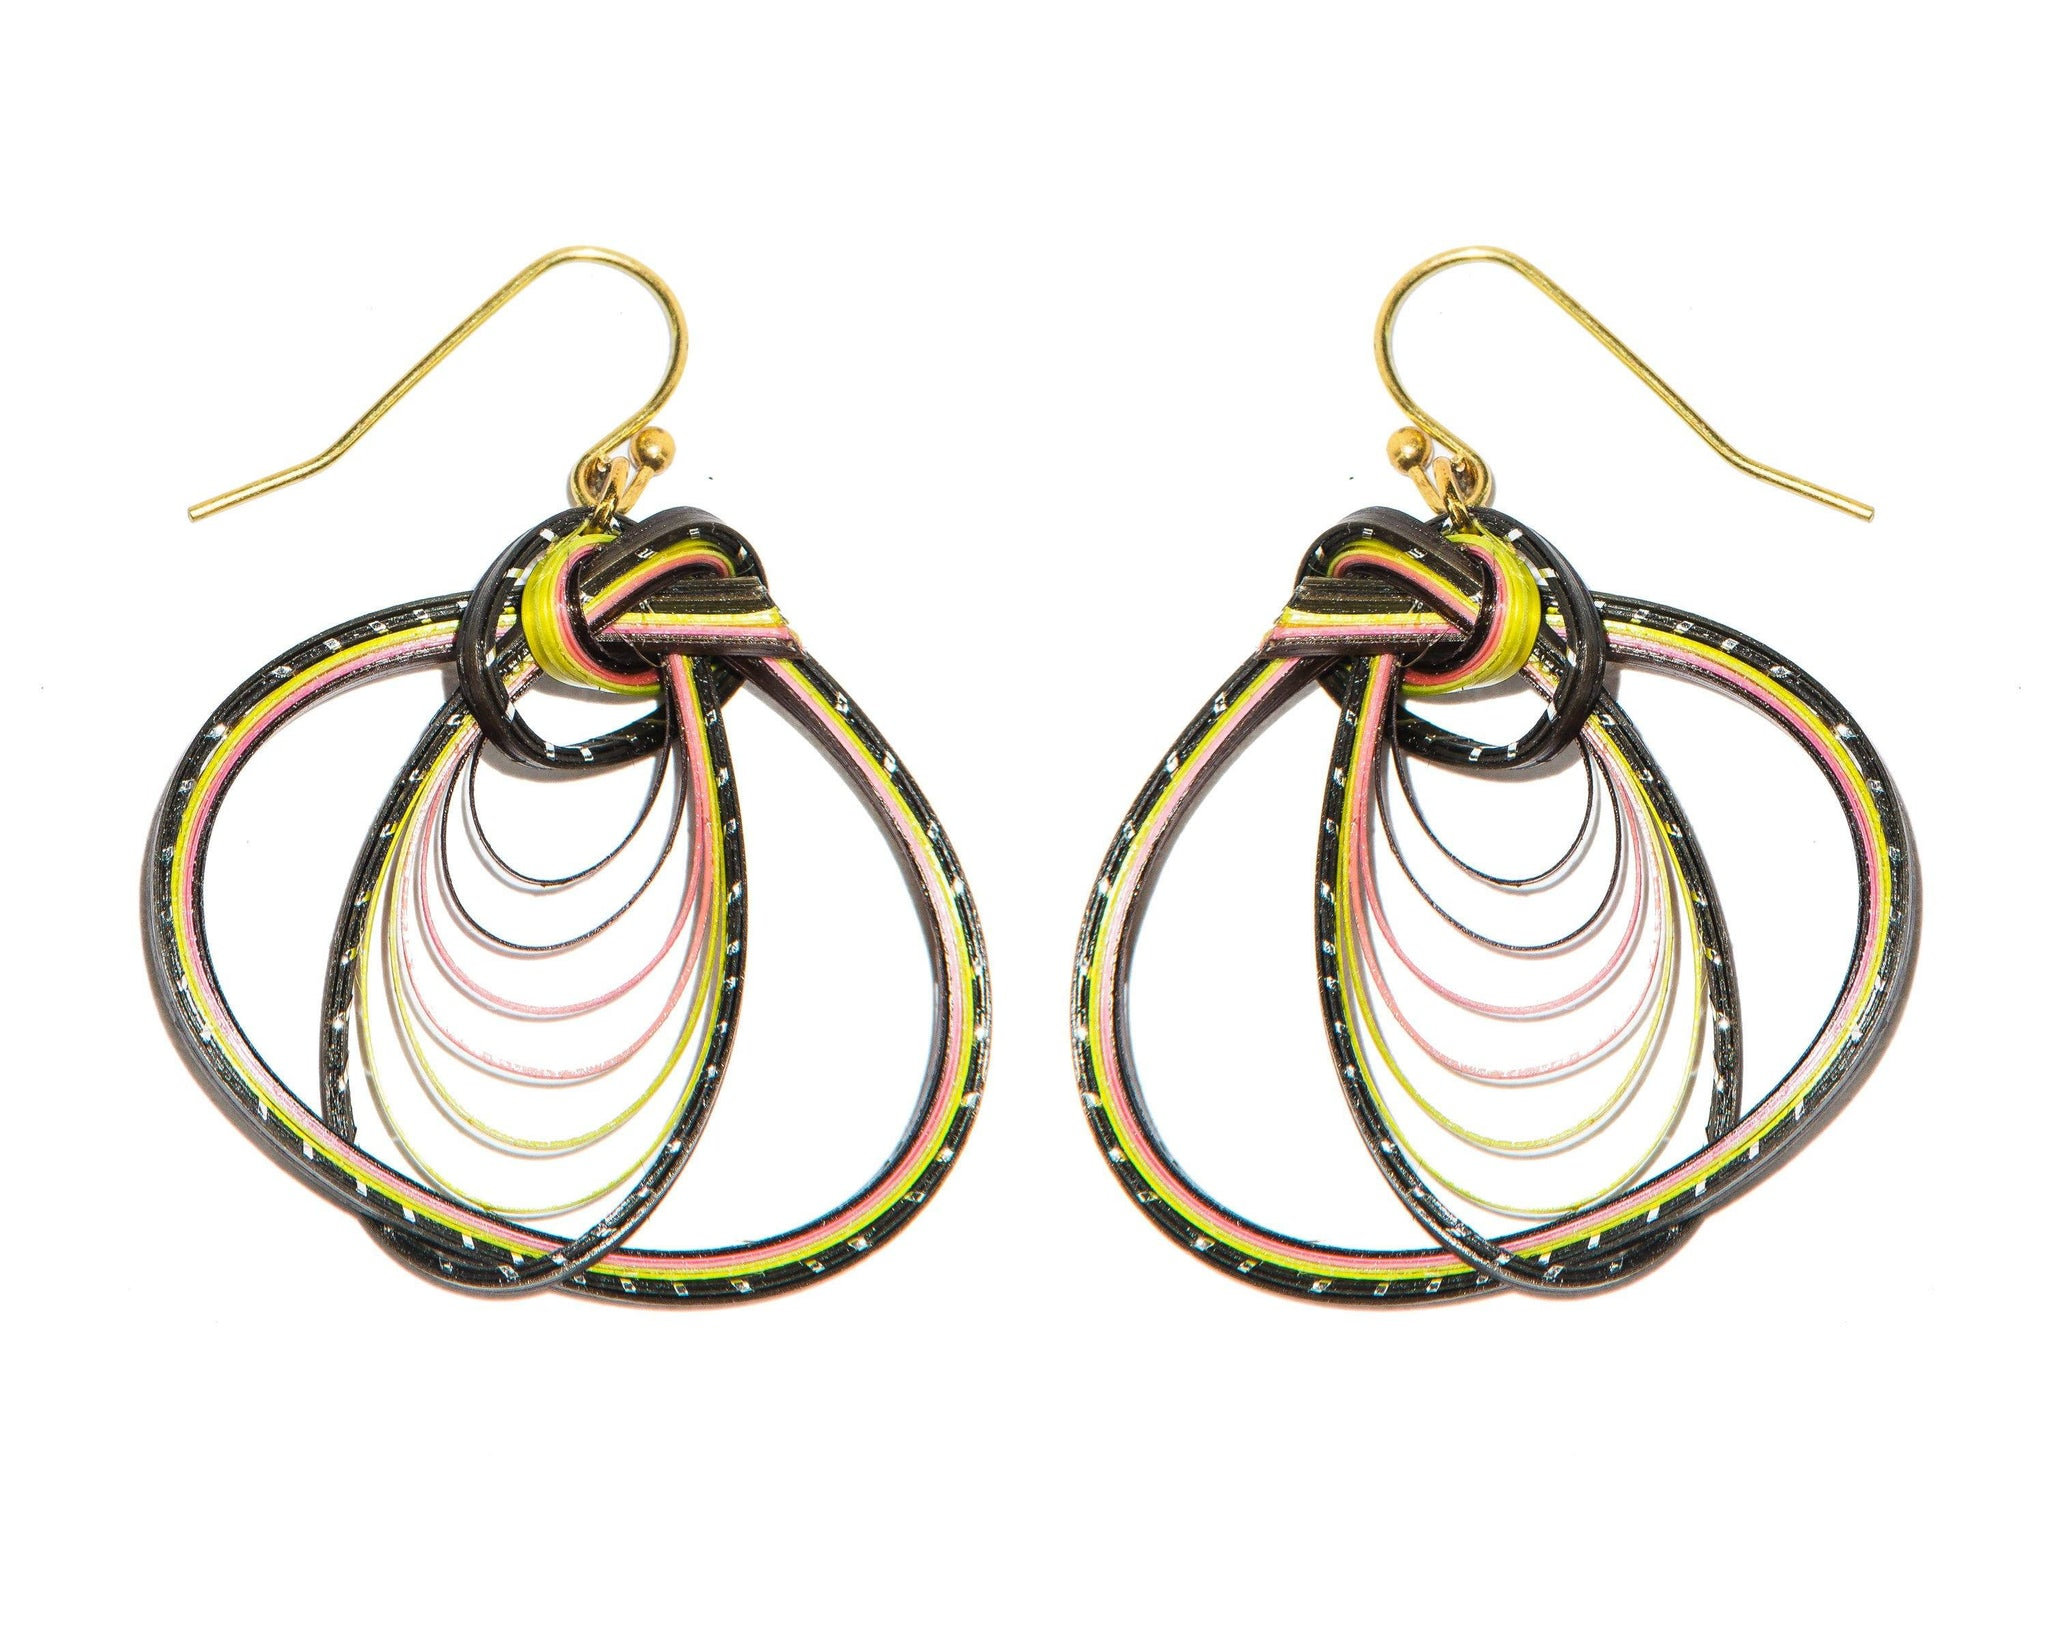 Handmade Bamboo Earring Bass Fashion 10 design each design in 3 colour - CCCollections